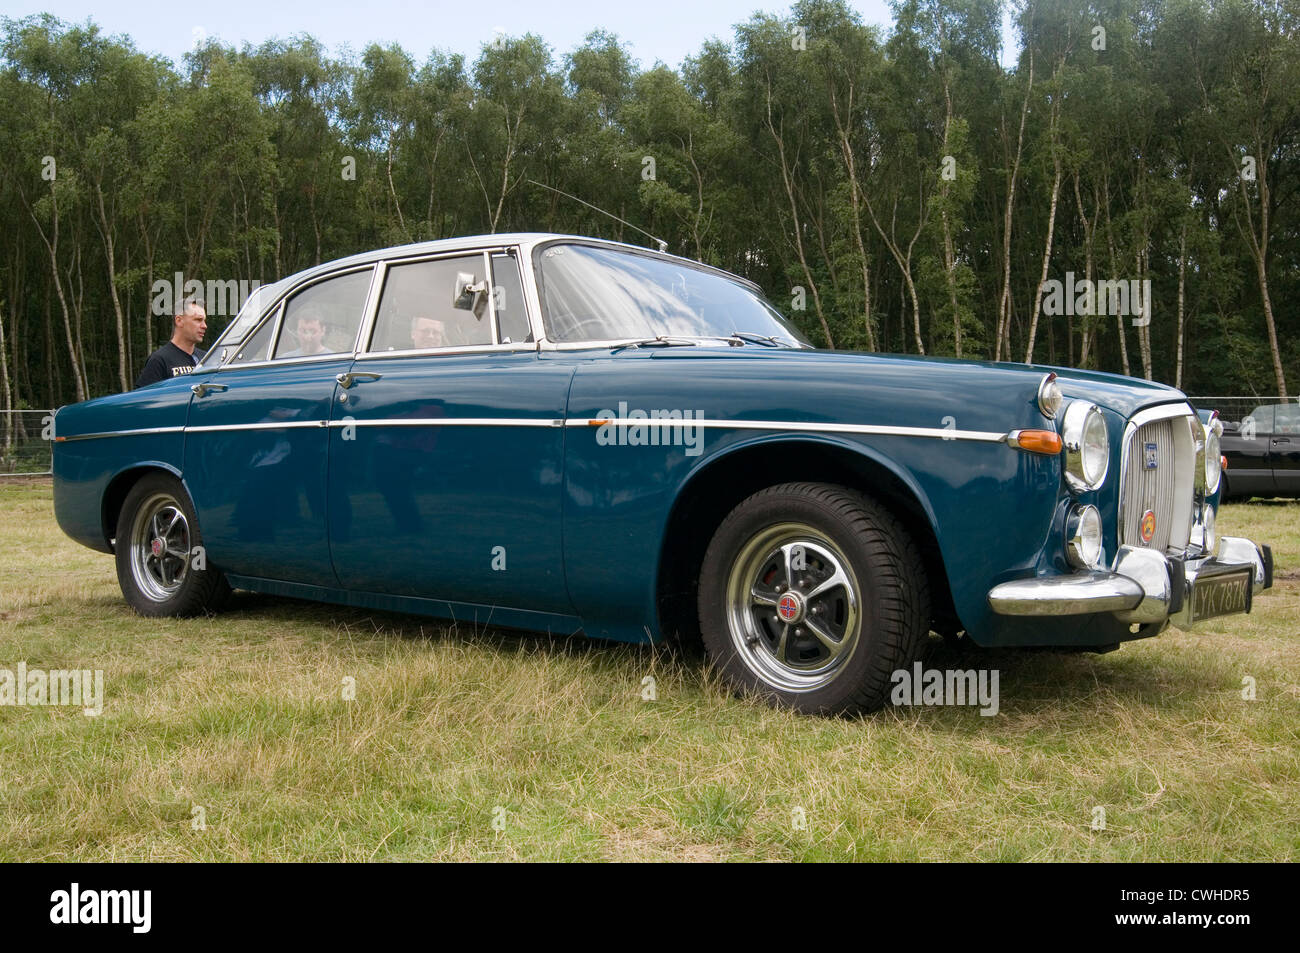 rover p5b luxury british car from the 1960\'s and early 1970\'s ...